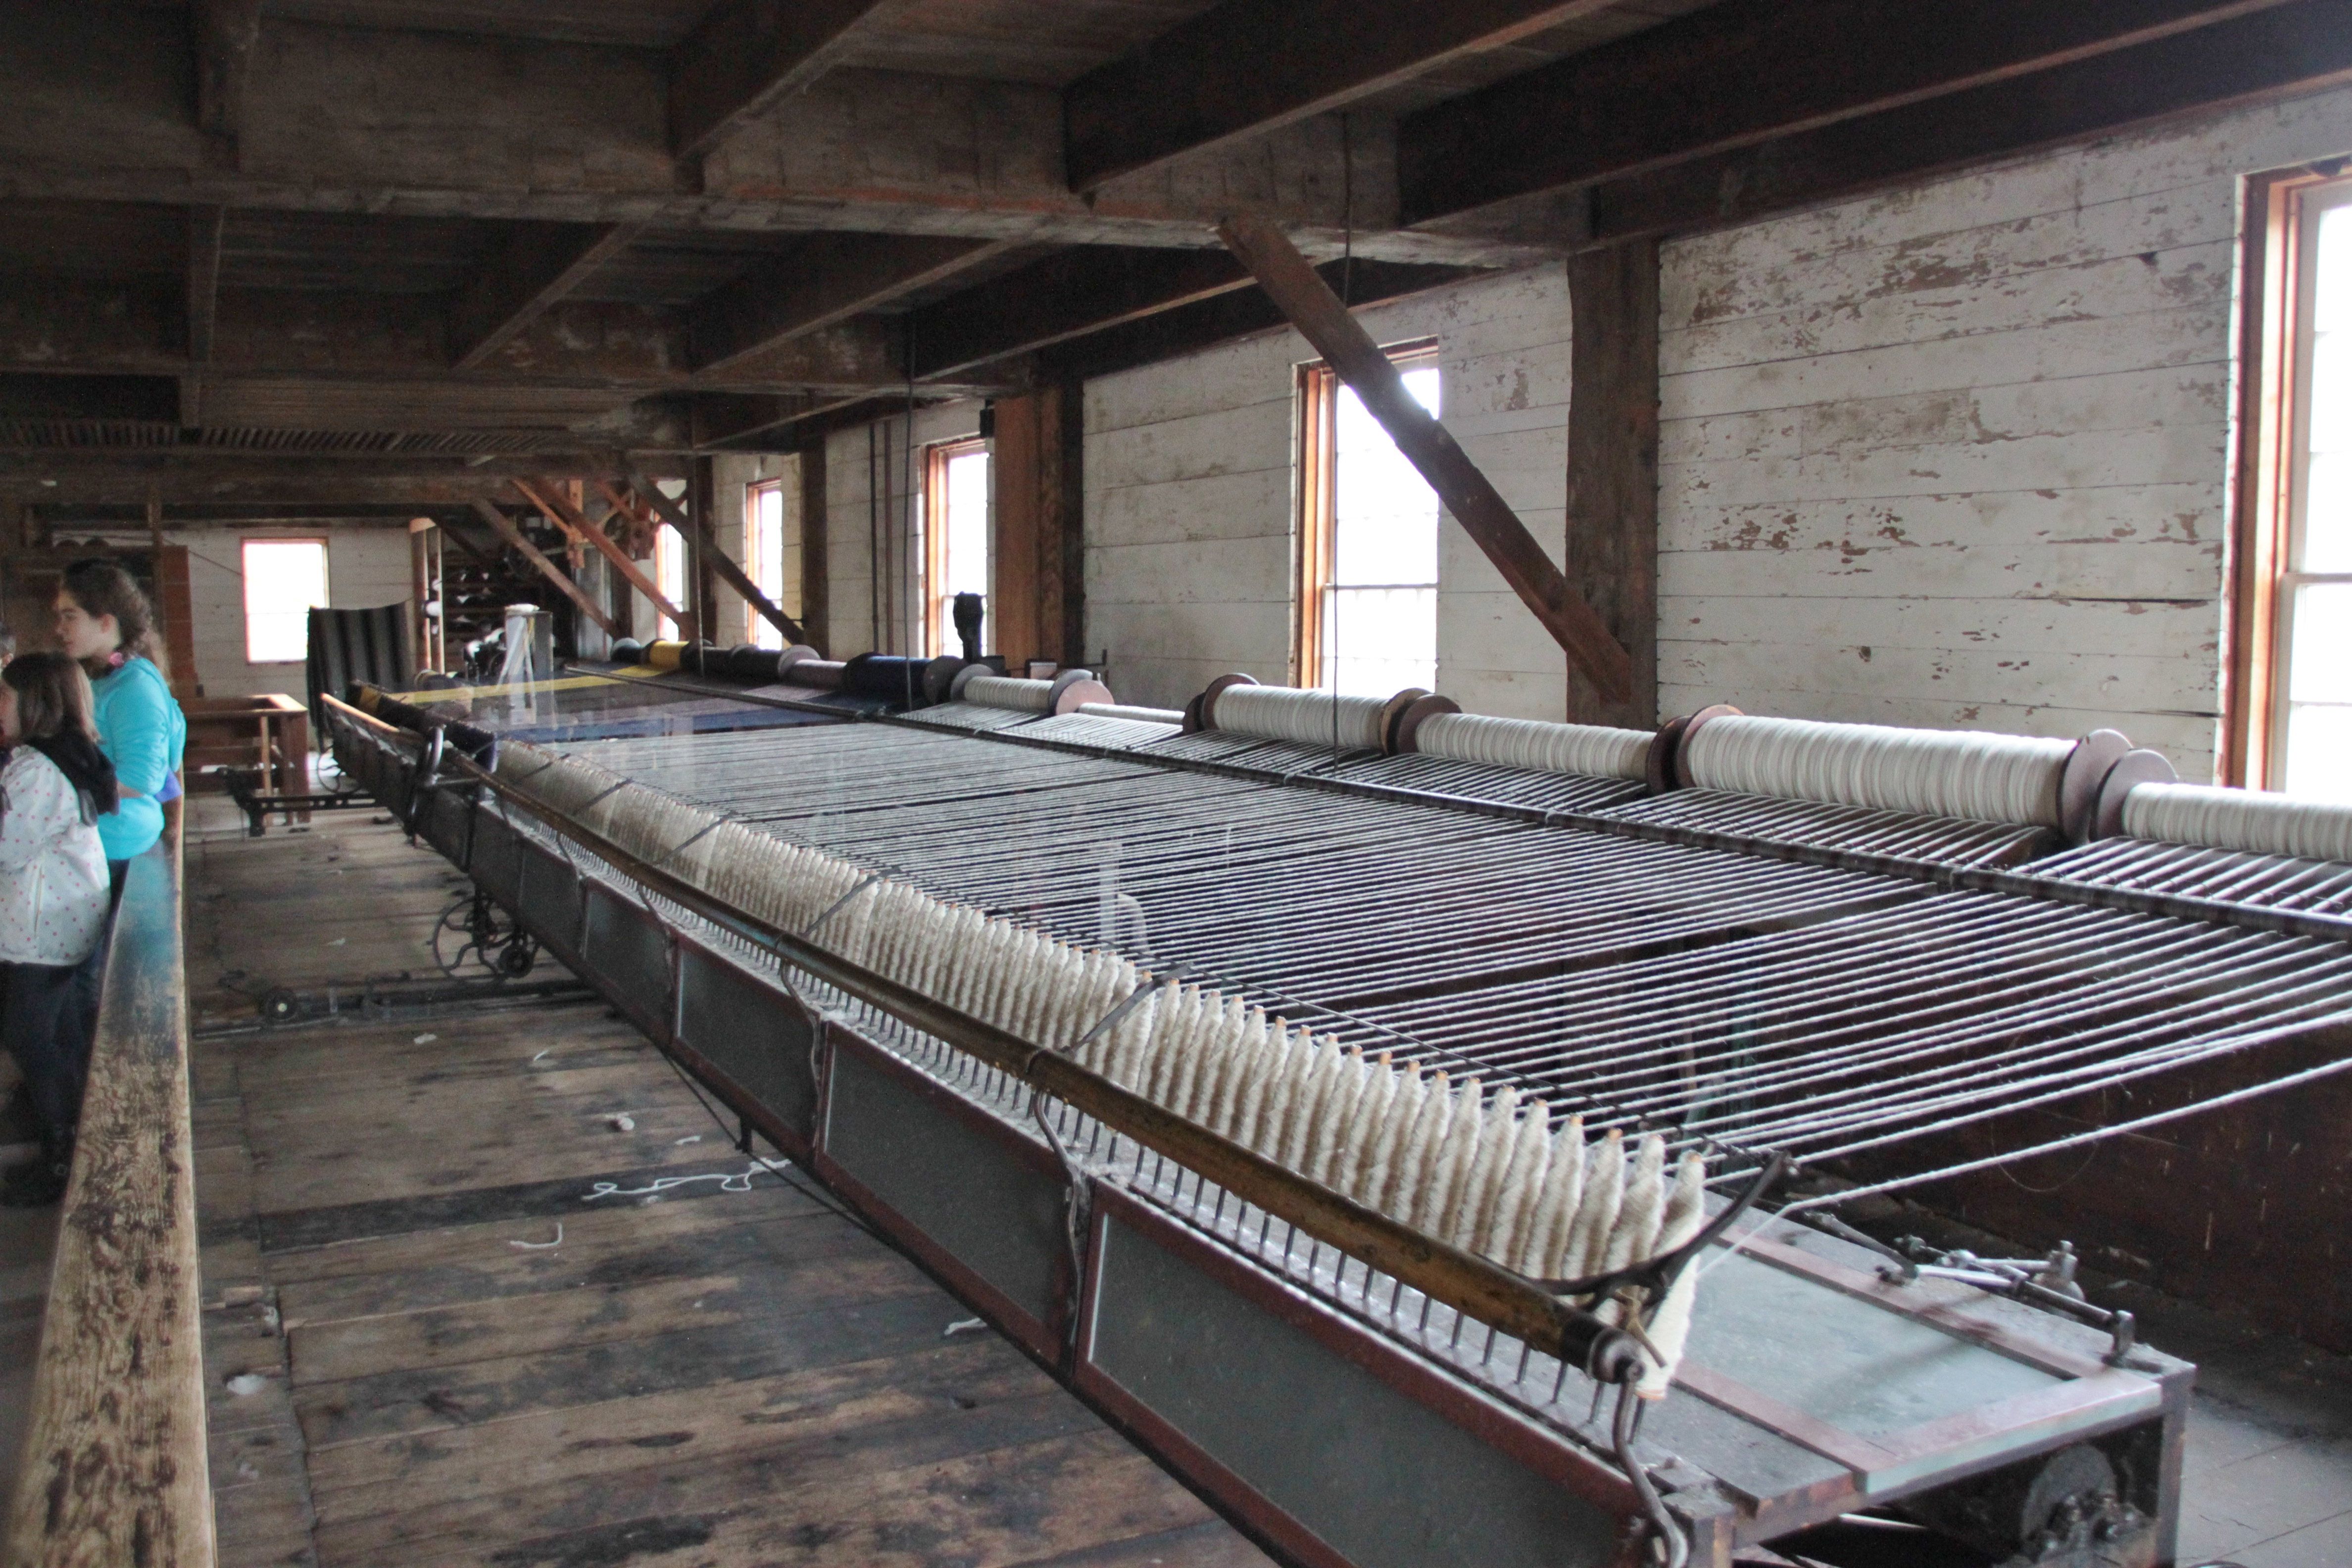 Machinery at Woolen Mill